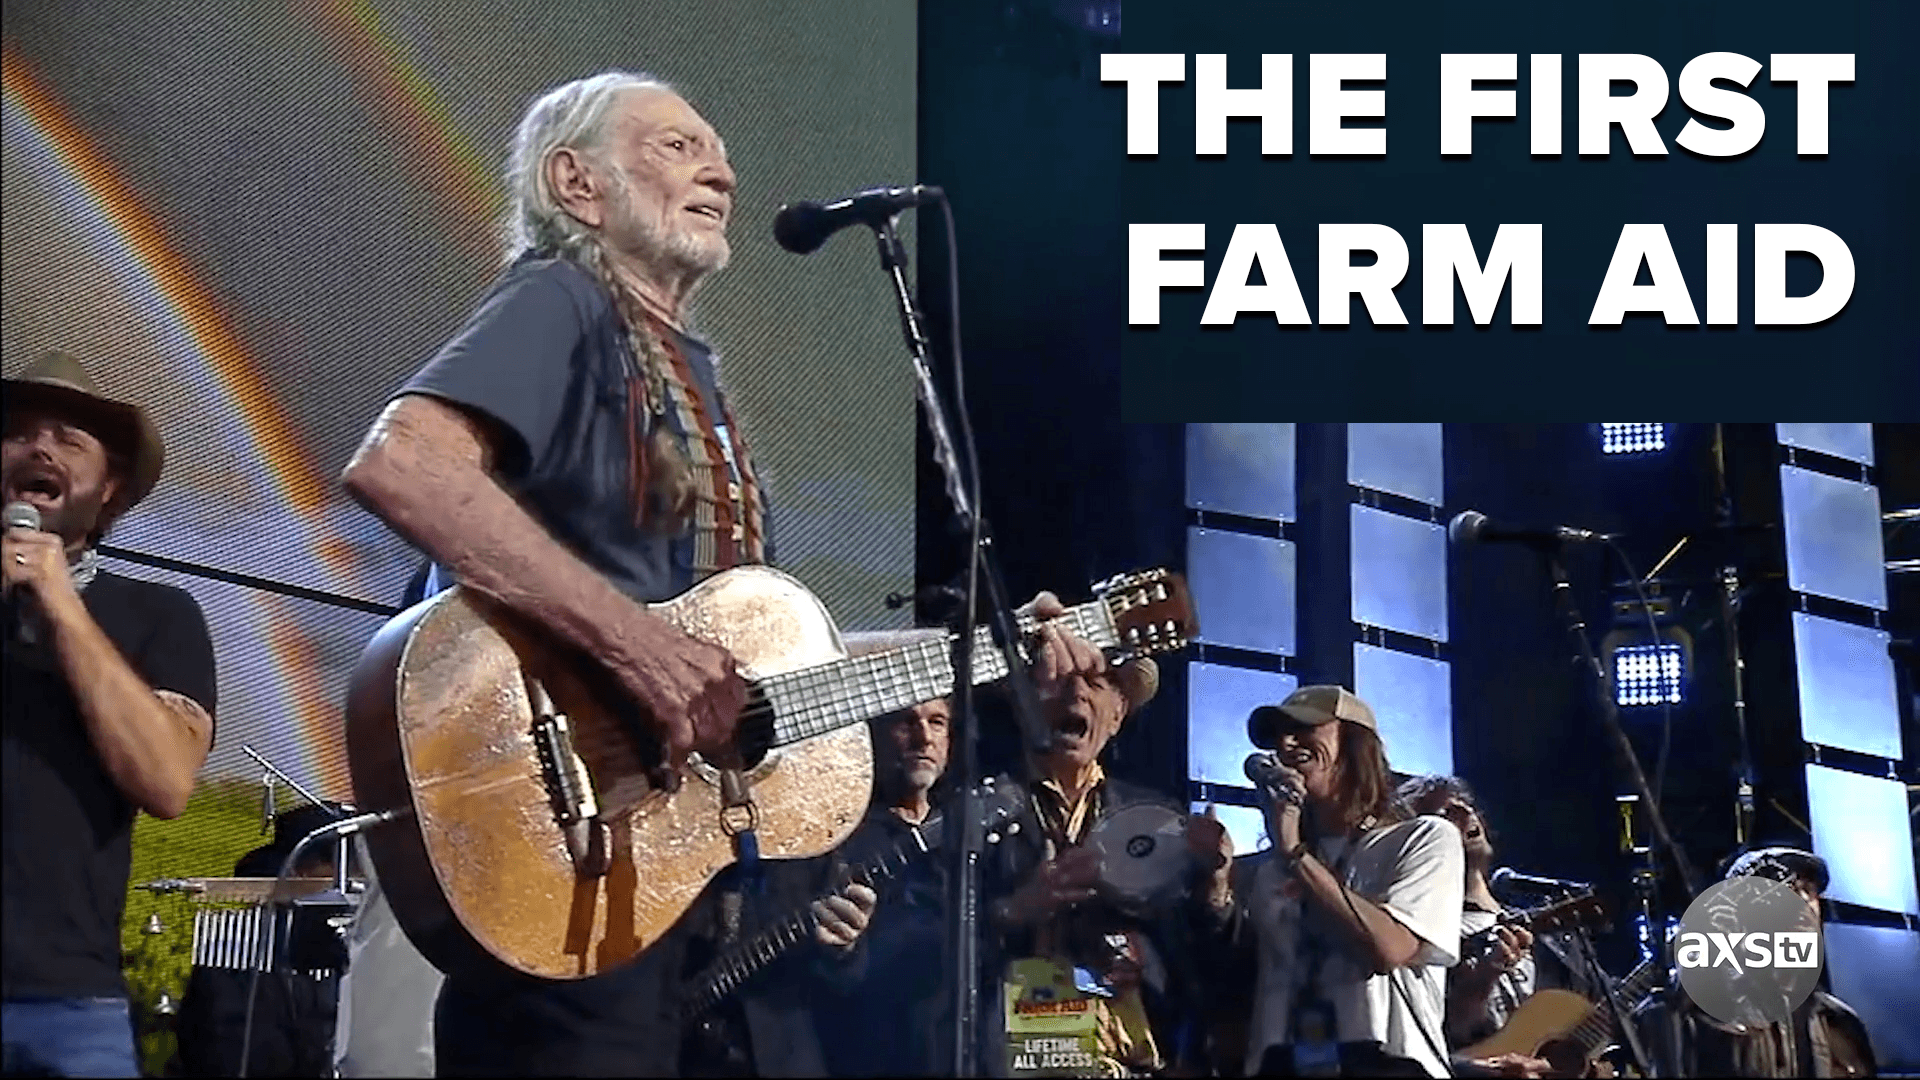 Willie Nelson, Neil Young and John Mellencamp Founded Farm Aid | This Week in Music History